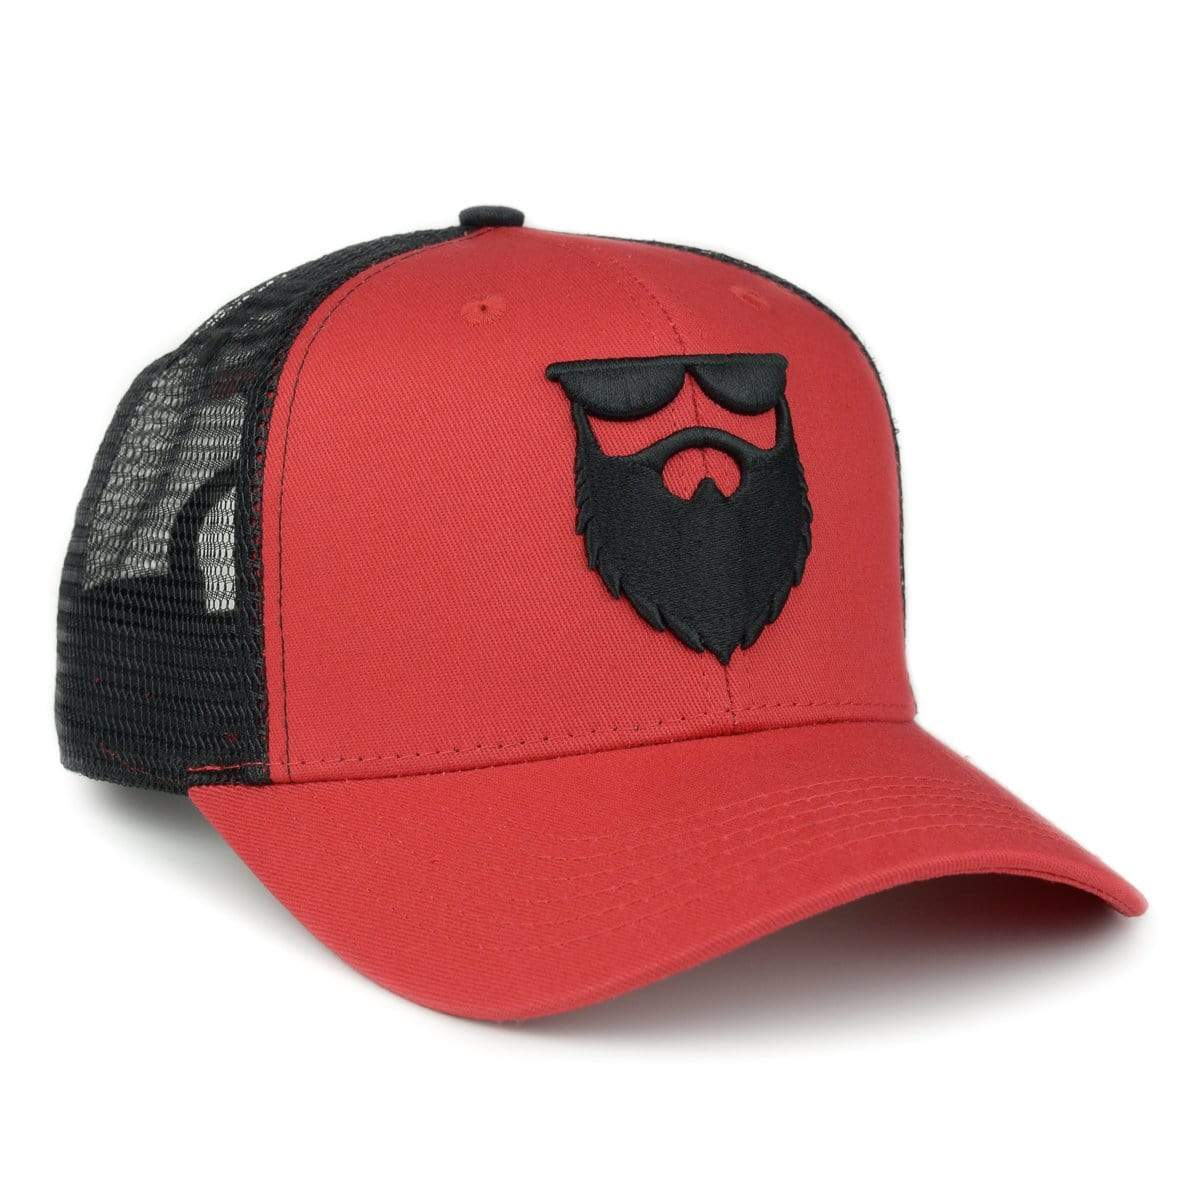 OG Beard Logo Mesh Trucker - Red/Black